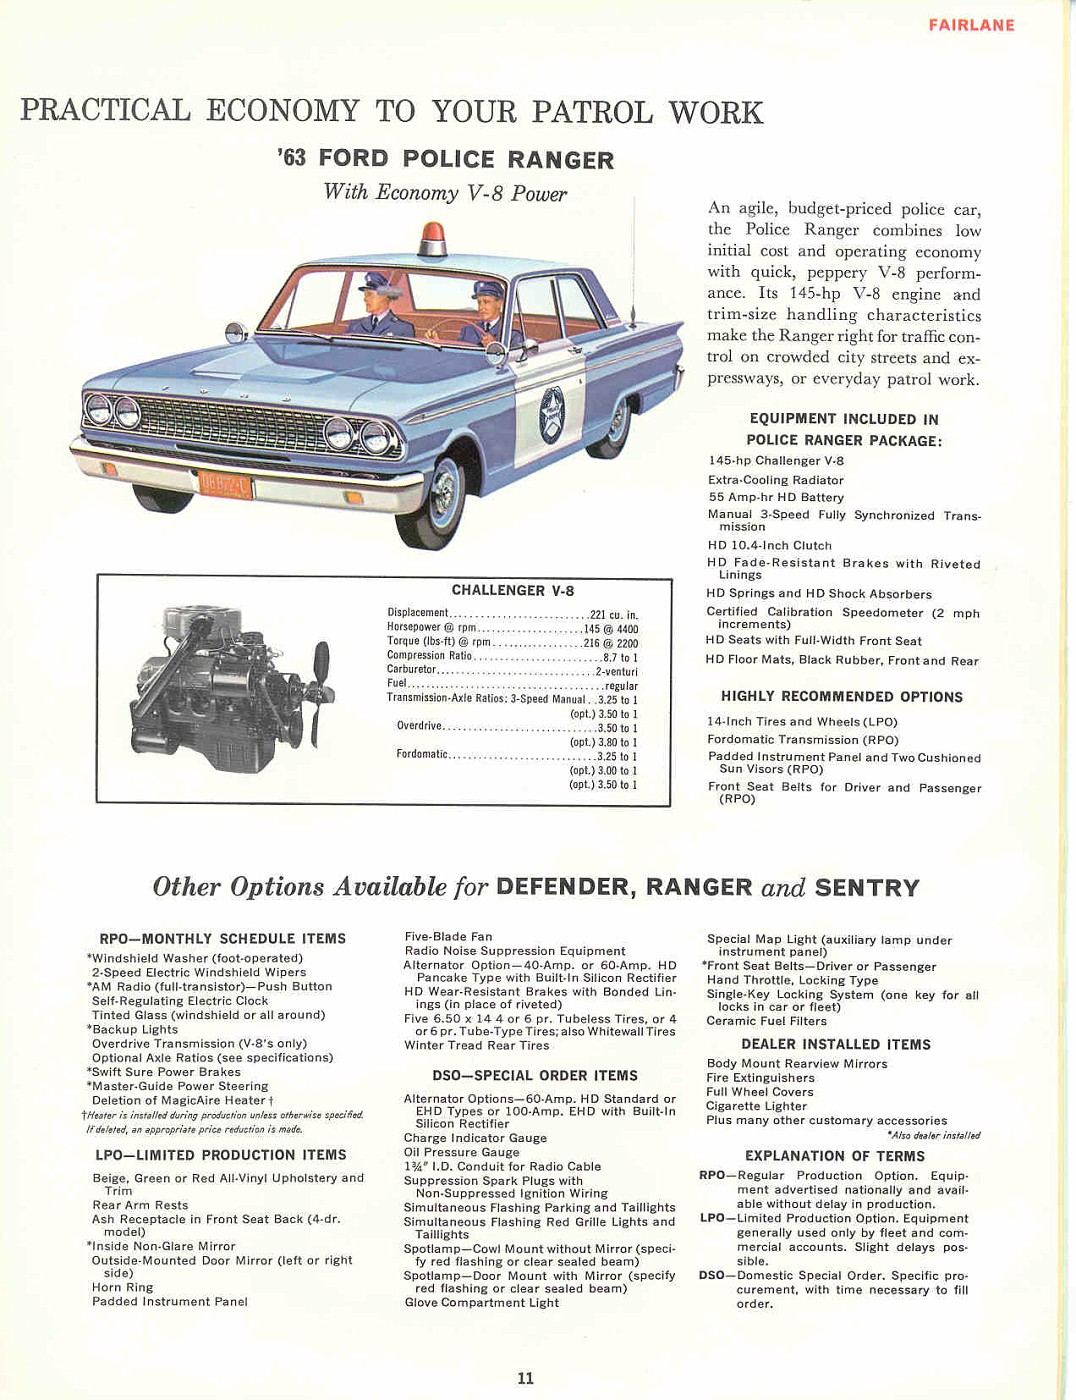 1963 Ford 11